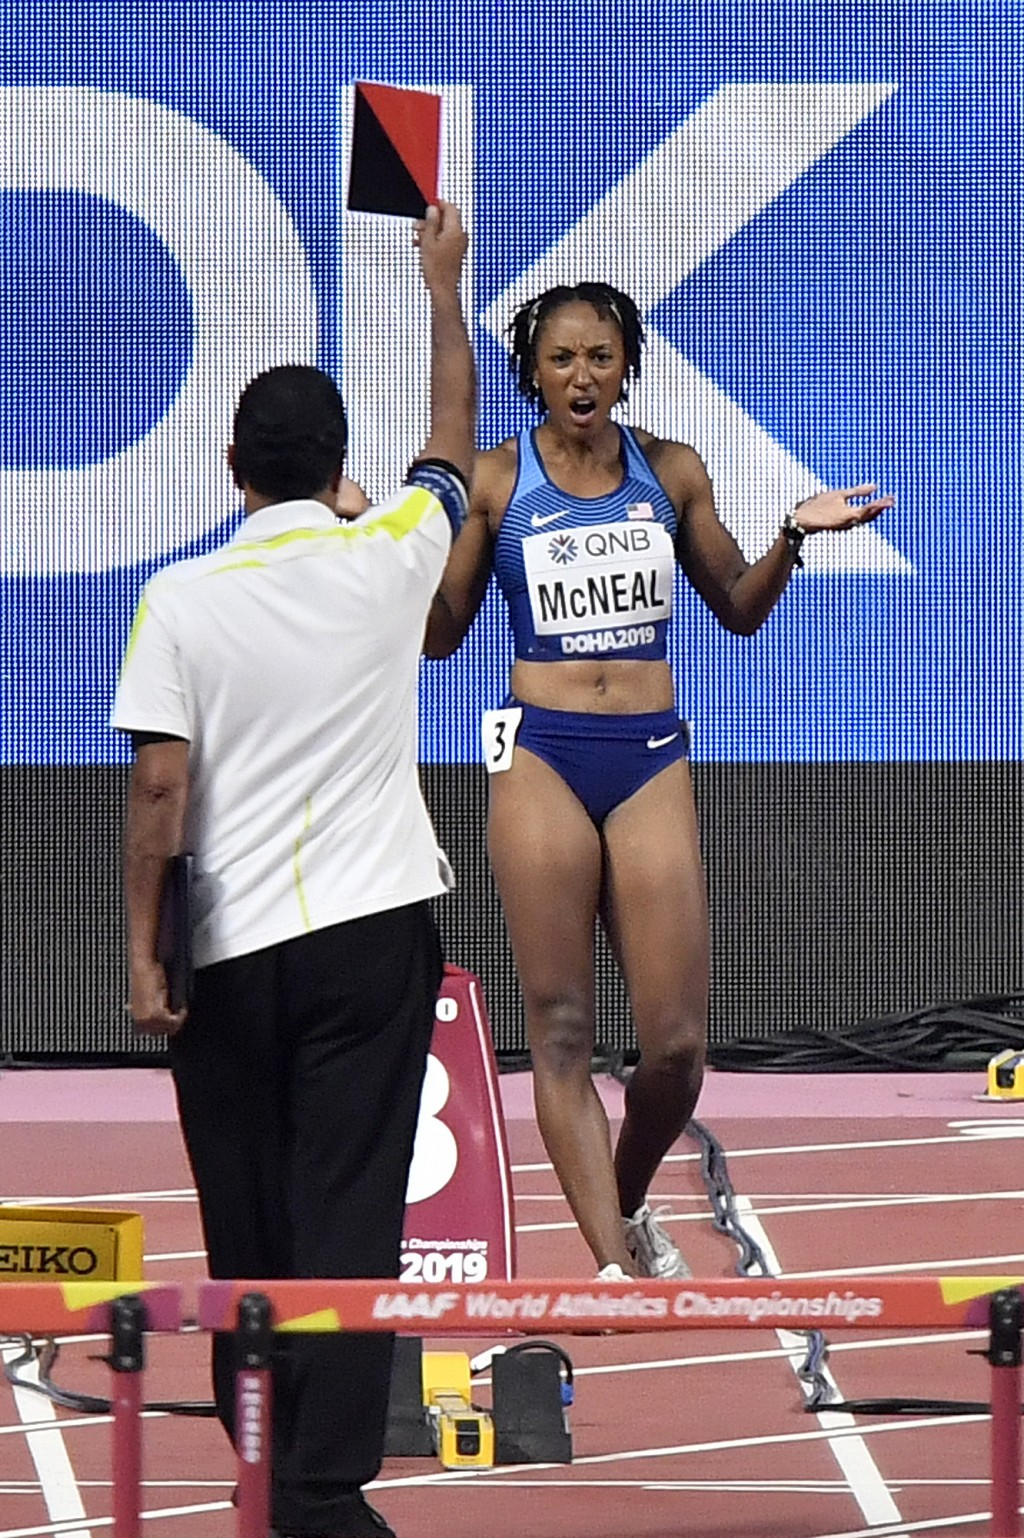 Brianna Mcneal, of the United States, is disqualified after a false start in the women's 100 meter hurdles heats during the World Athletics Championsh